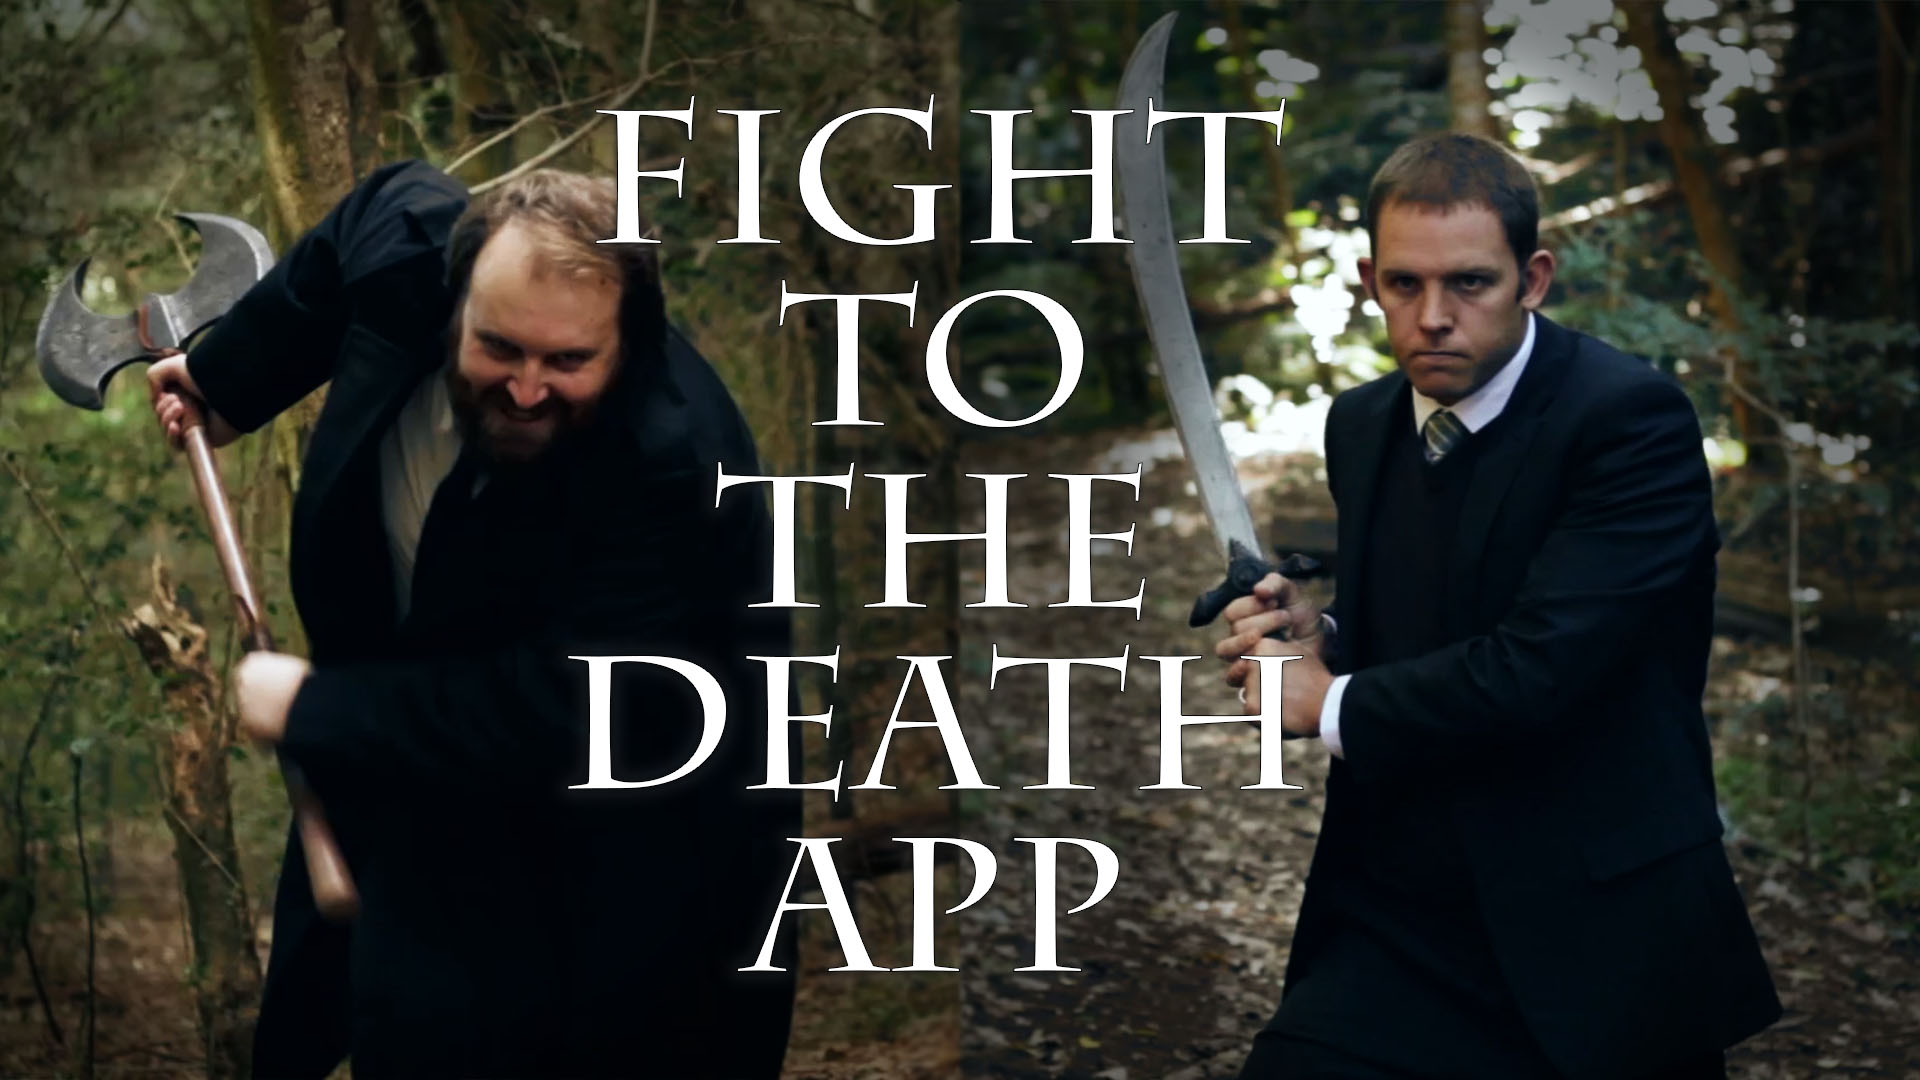 Fight To The Death App